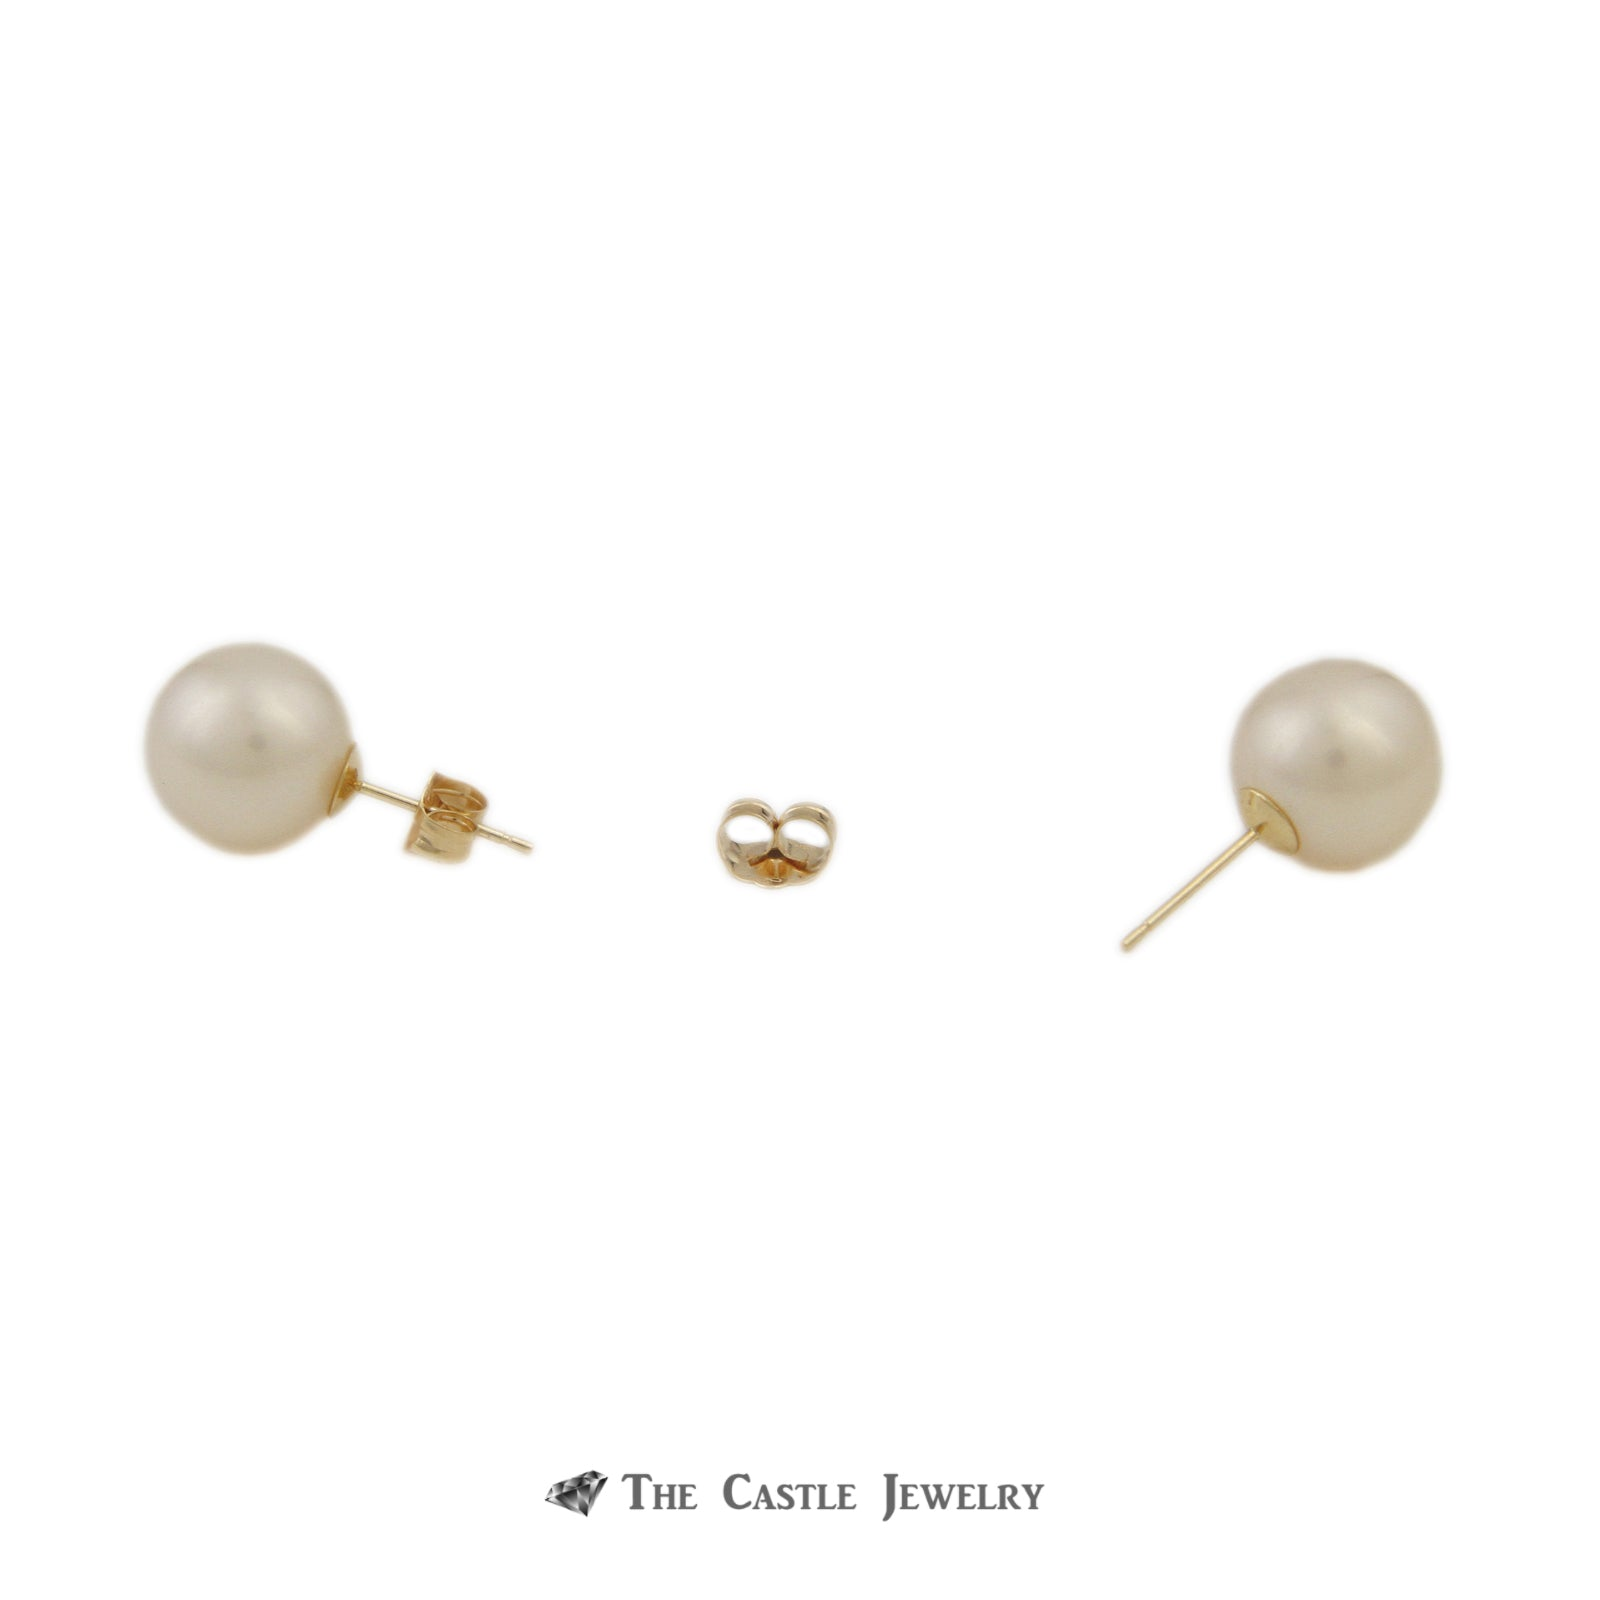 Pearl Earrings with 10-11mm Pearls in 14K Yellow Gold